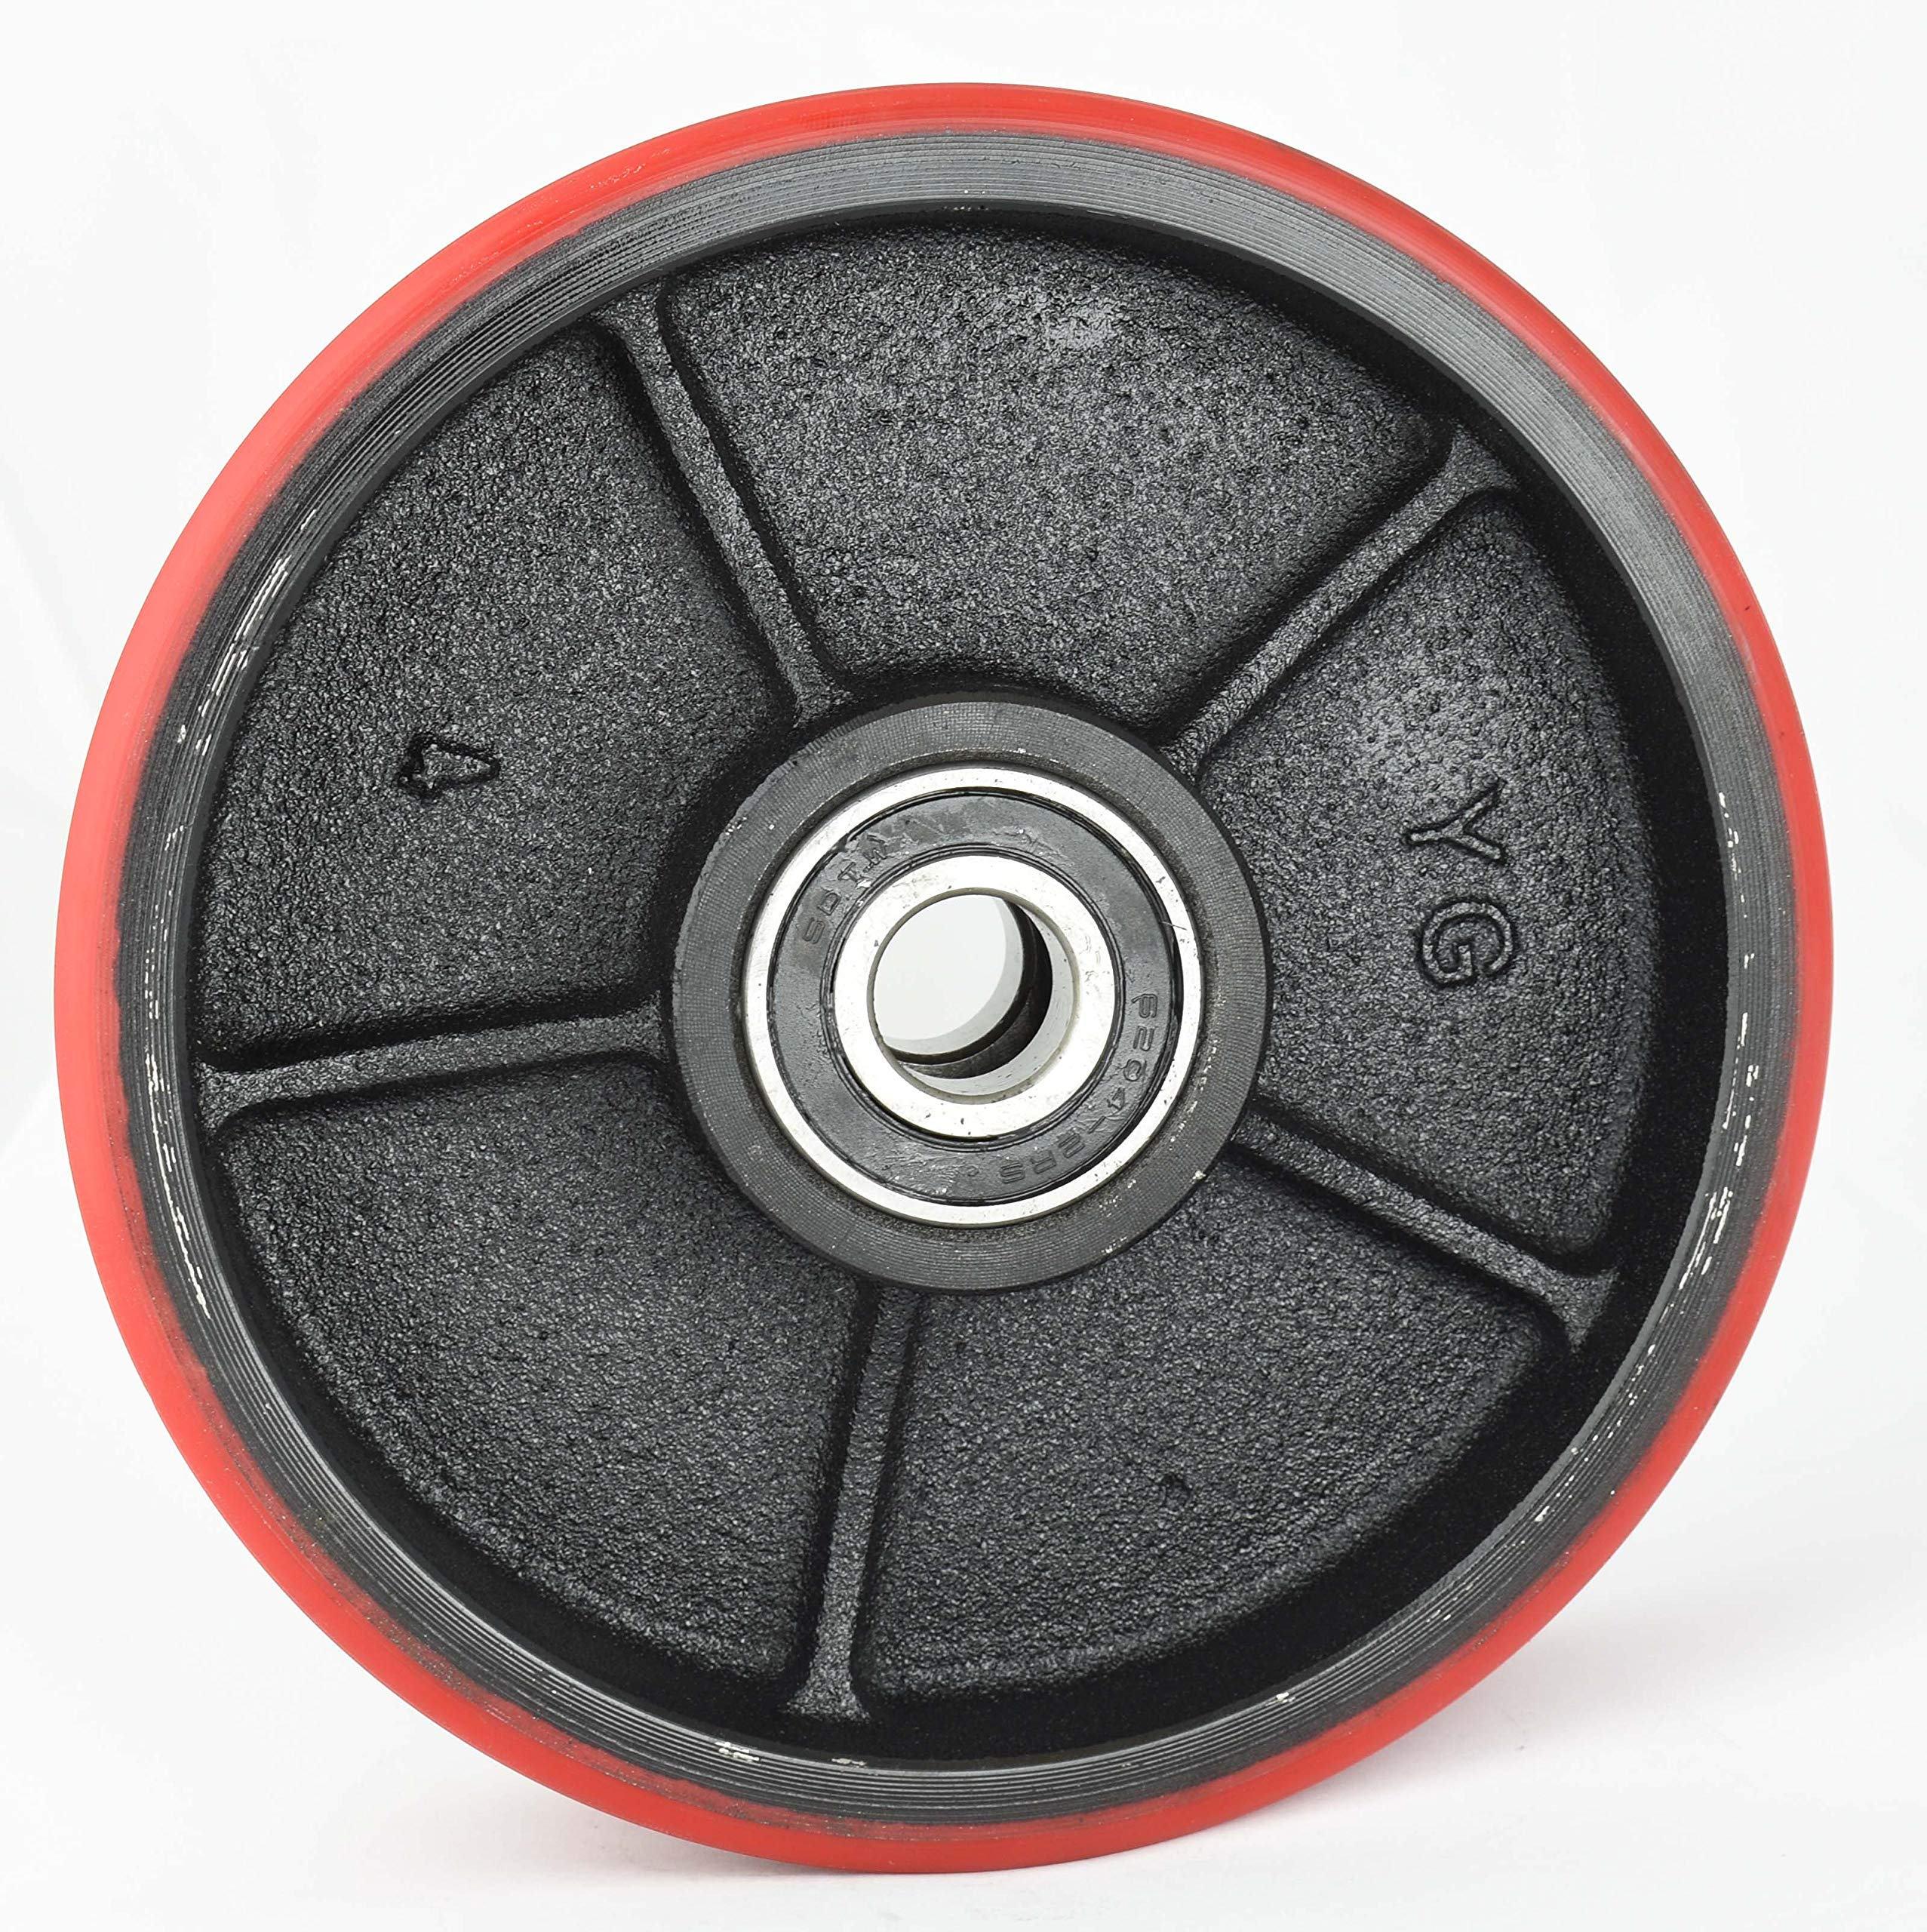 Pallet Jack/Truck Steering Wheels 7''x2'' Set with Front Load Roller 2.75'' x 3.75'' (4 pcs) with Bearings ID 20mm Poly Tread Red by CARBO GLIDE (Image #3)